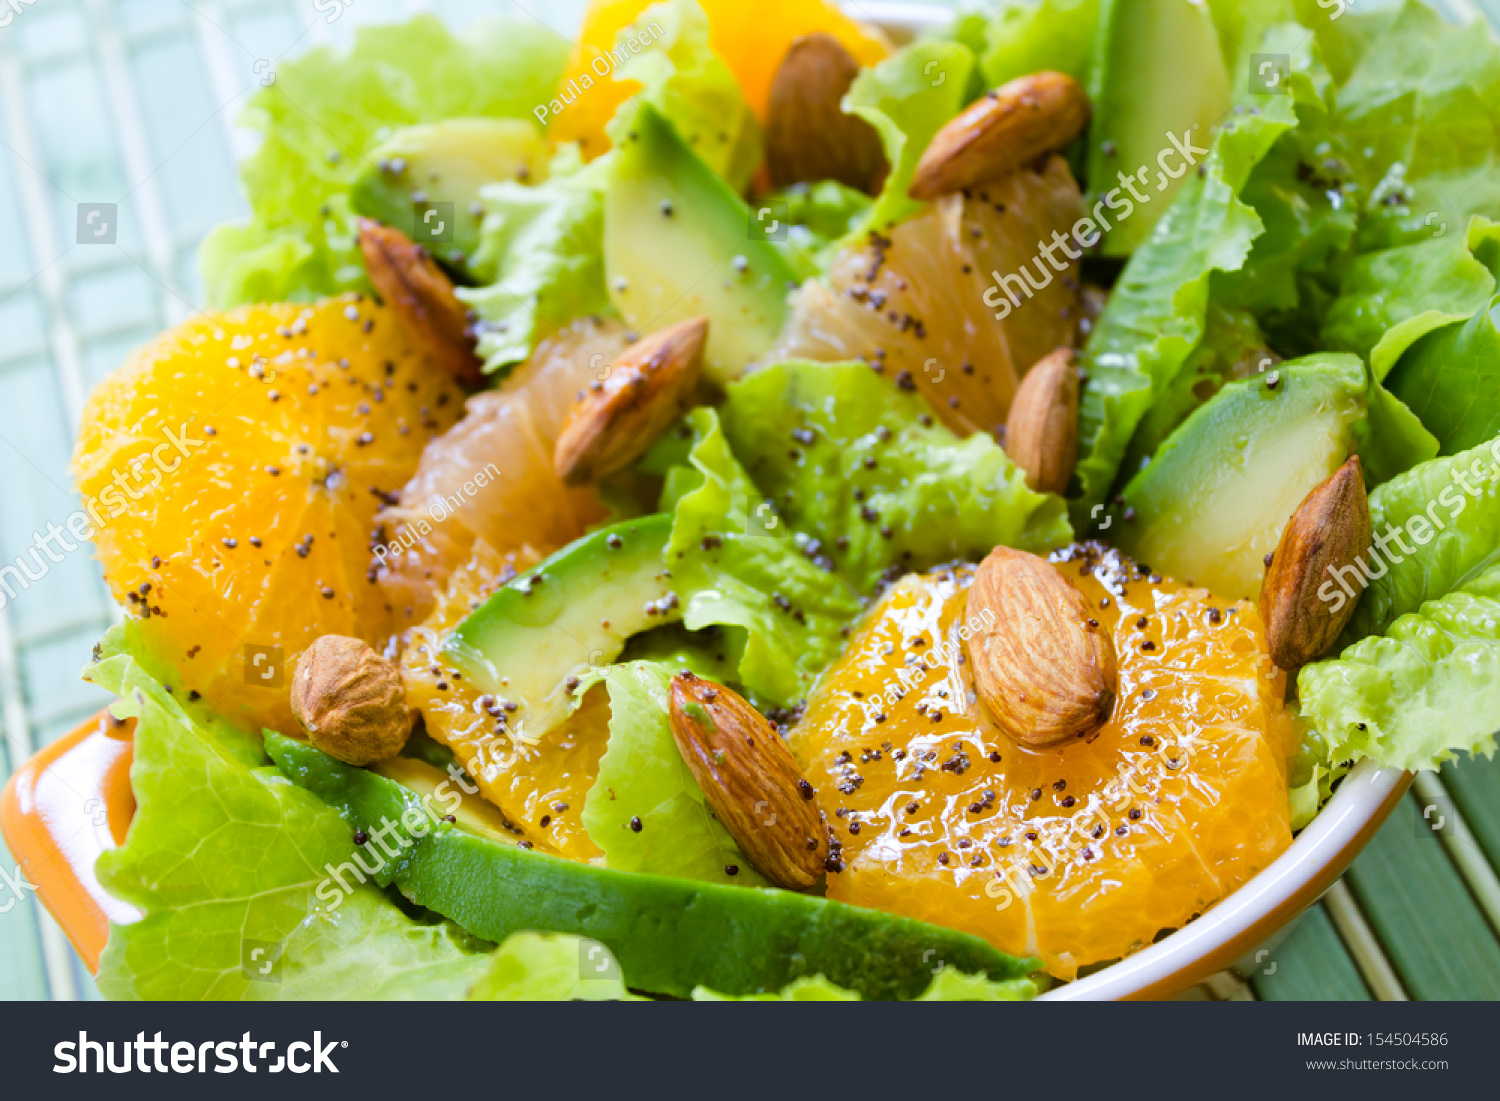 Summery Citrus Salad With Almonds And Lemon Poppy Seed Dressing Stock ...